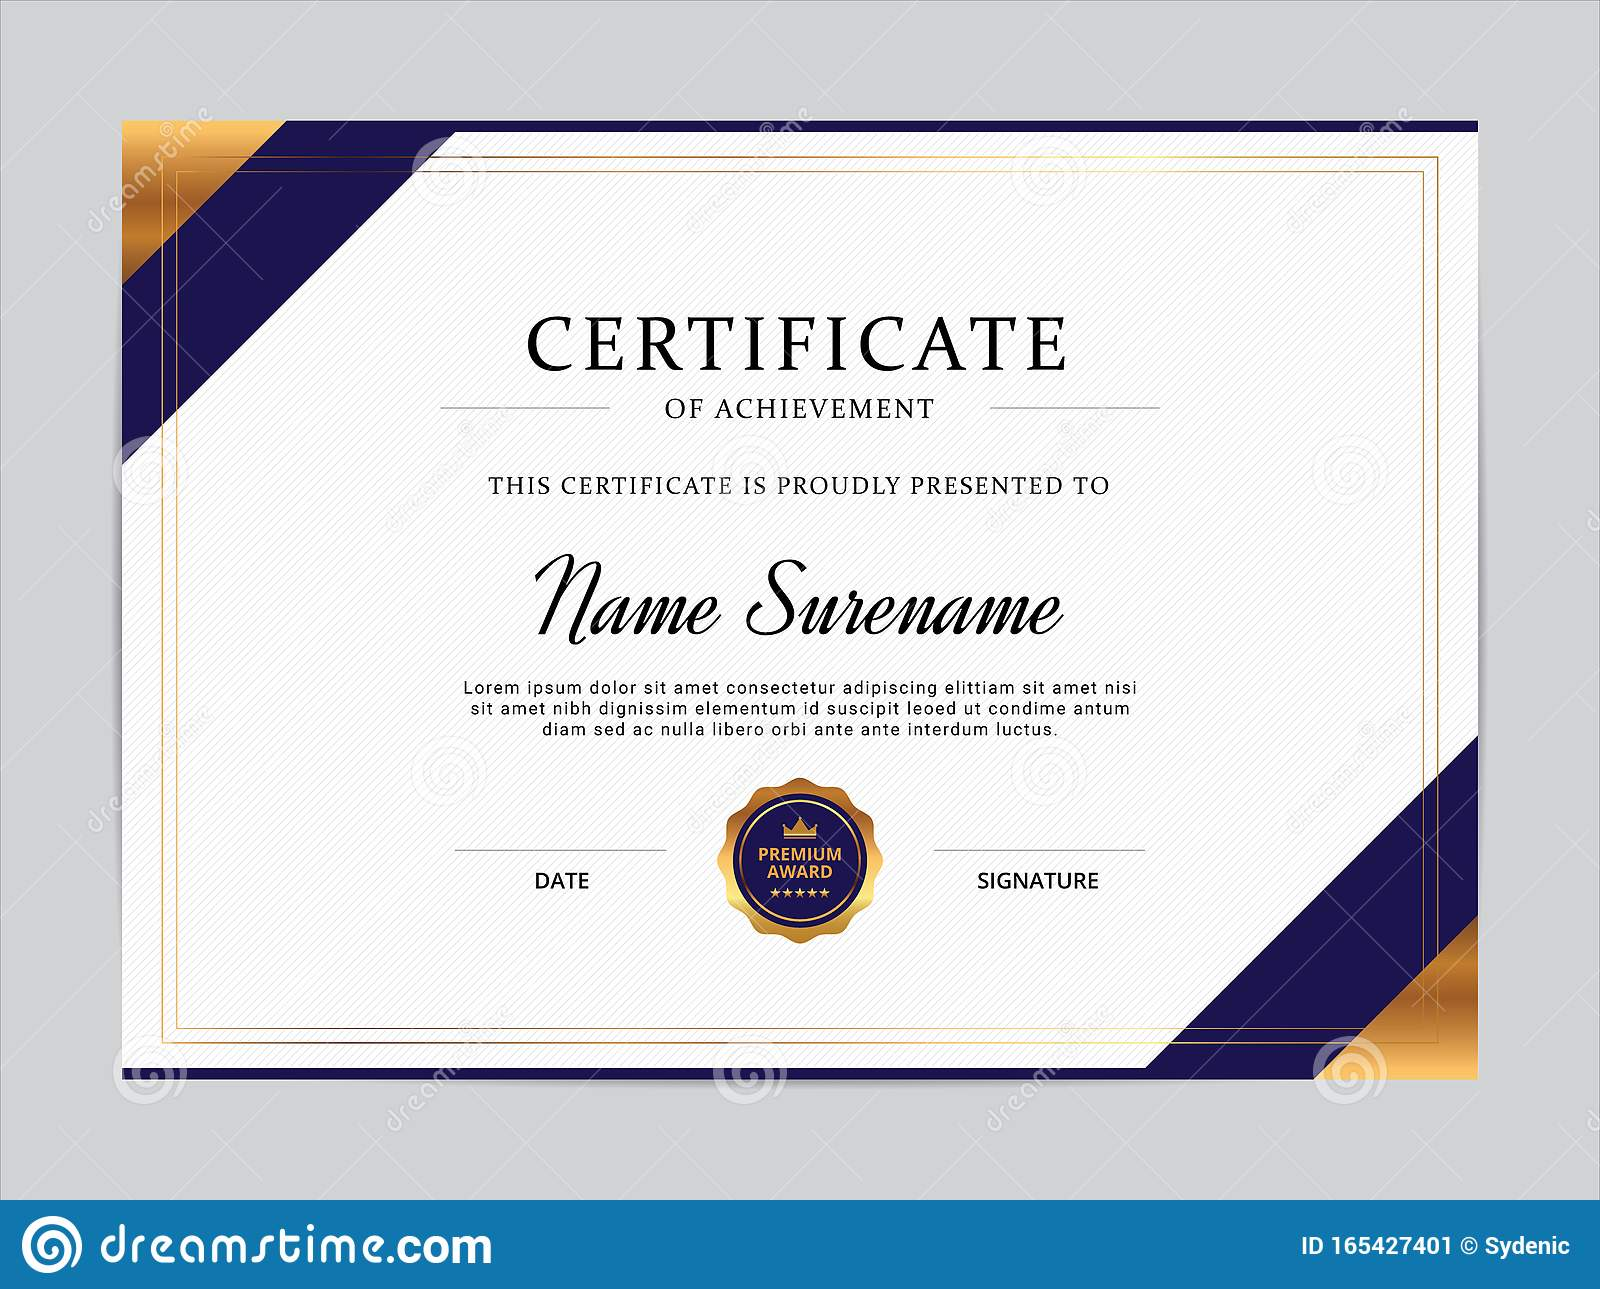 Training Certification Template from thumbs.dreamstime.com